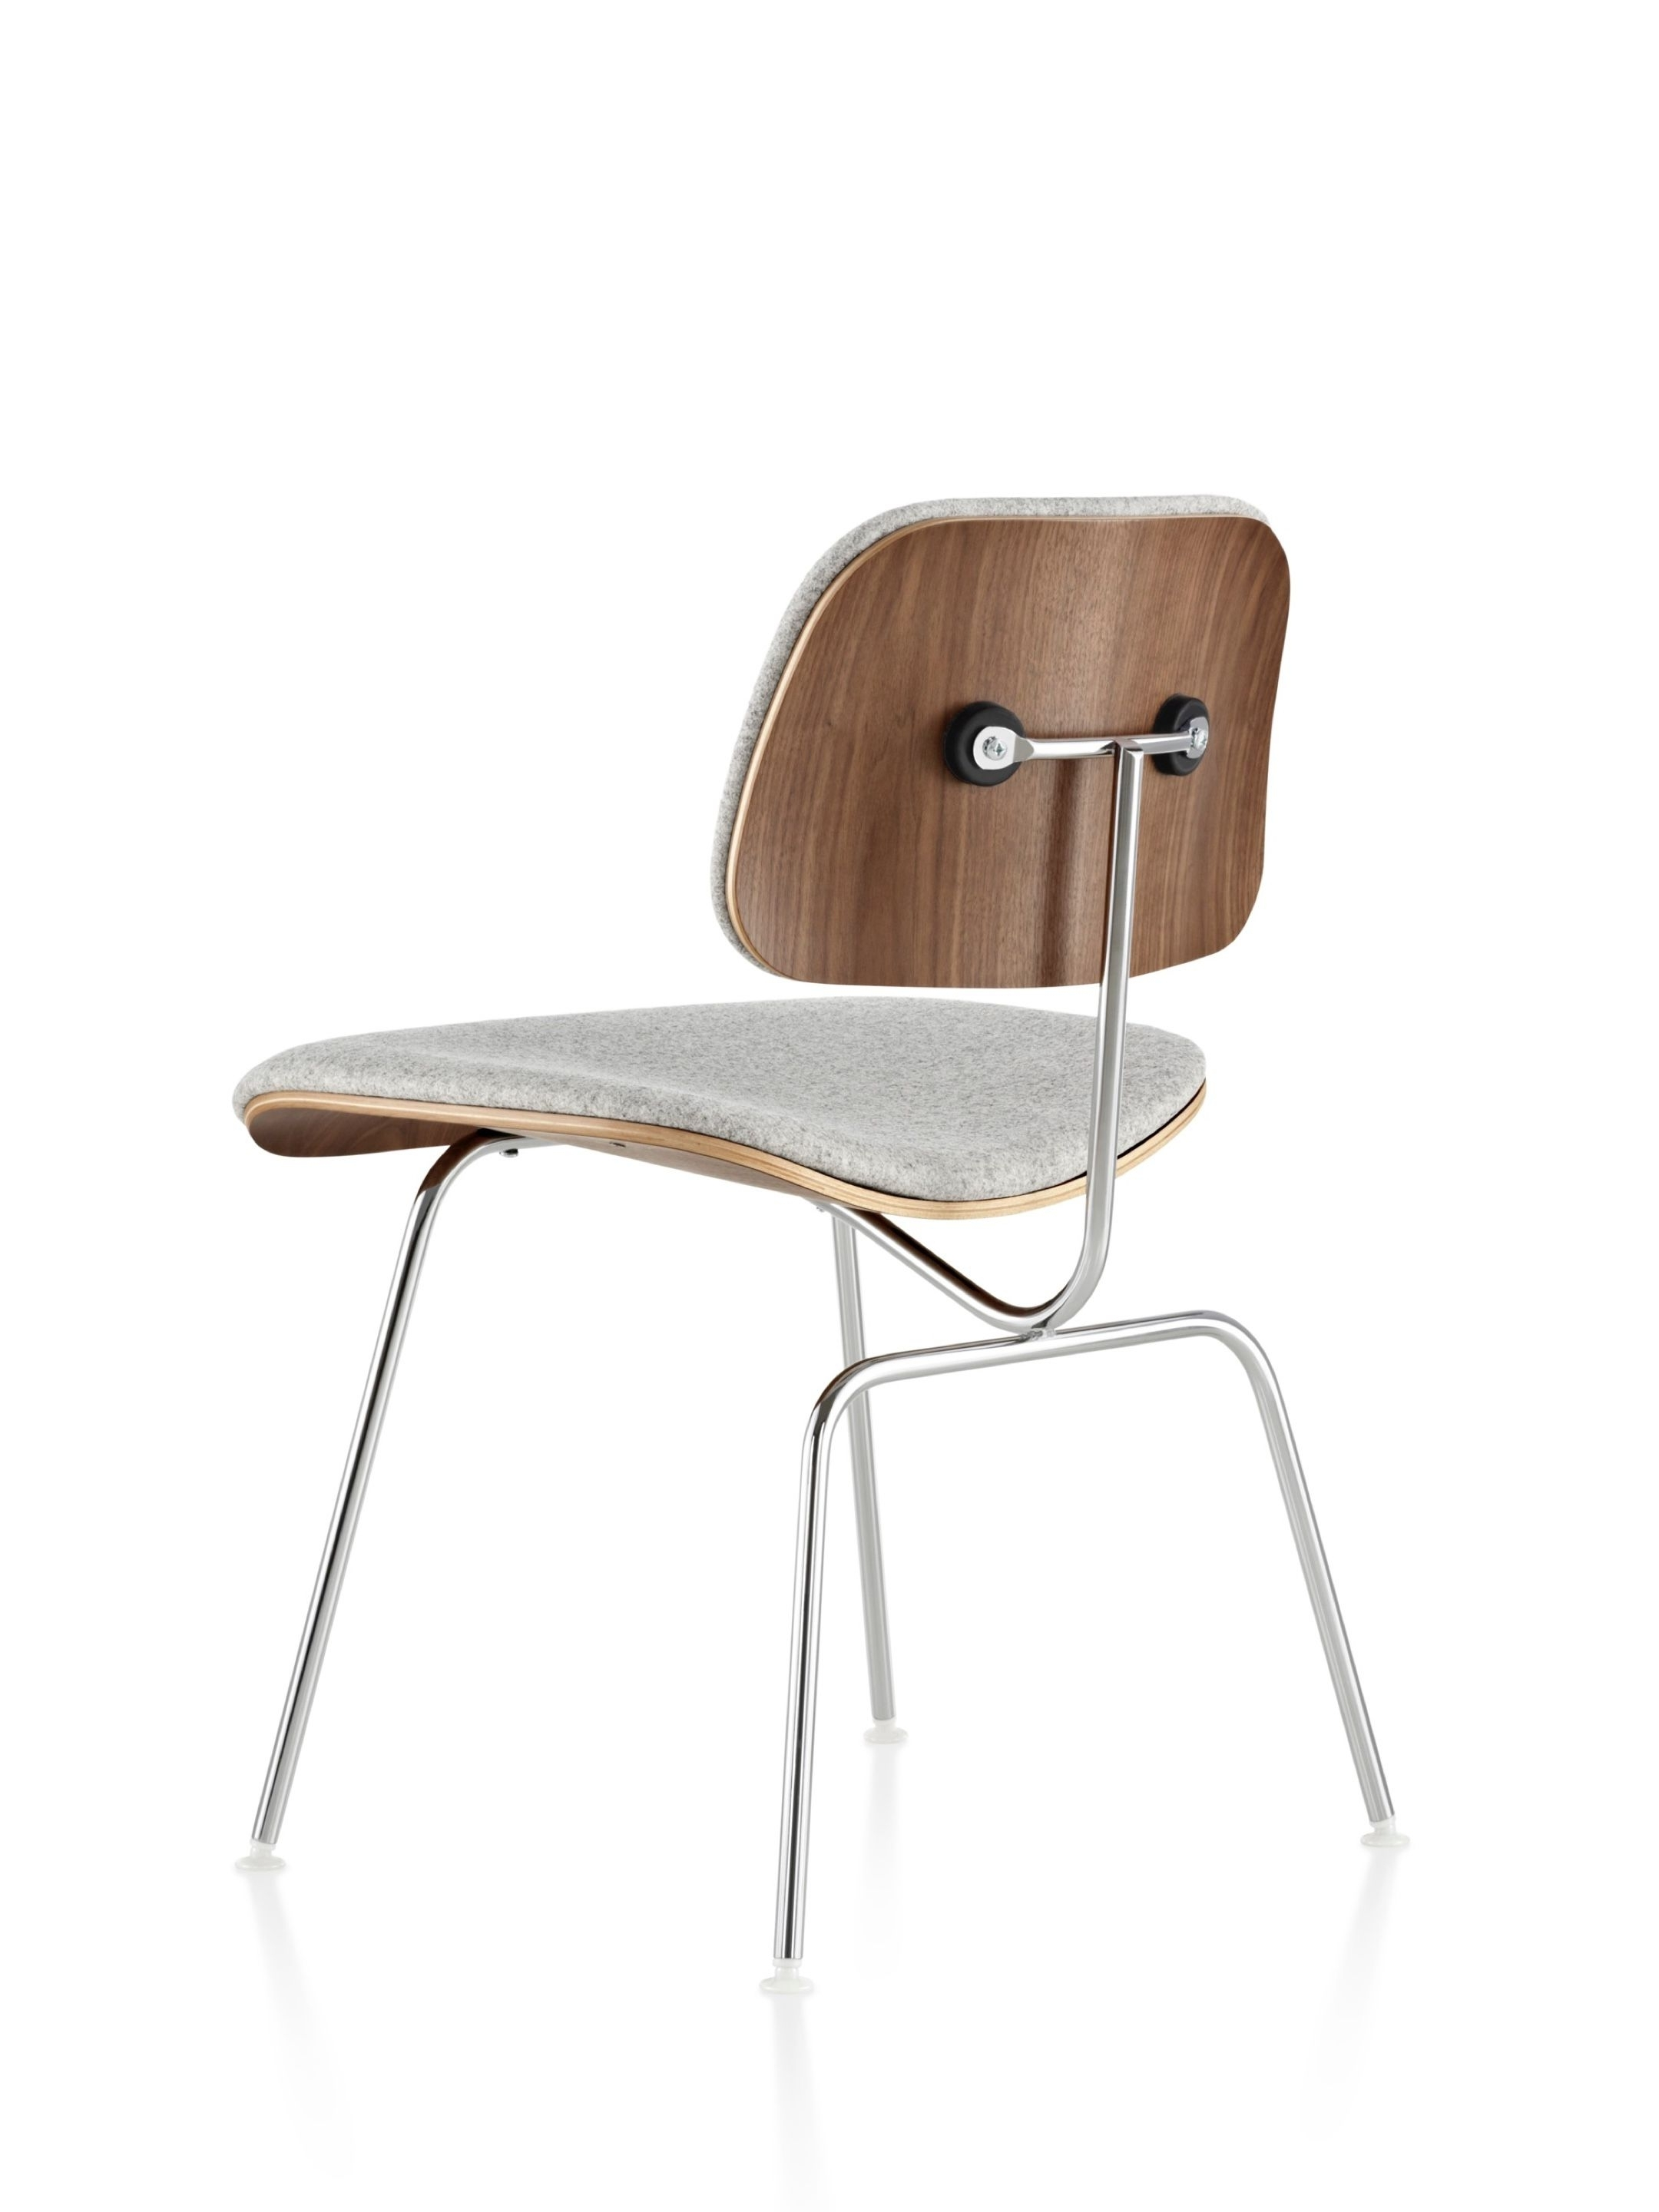 Plywood & Metal Brown Dining Chairs Inside Most Current Eames Molded Plywood Dining Chair With Metal Base Upholstered In (View 13 of 20)